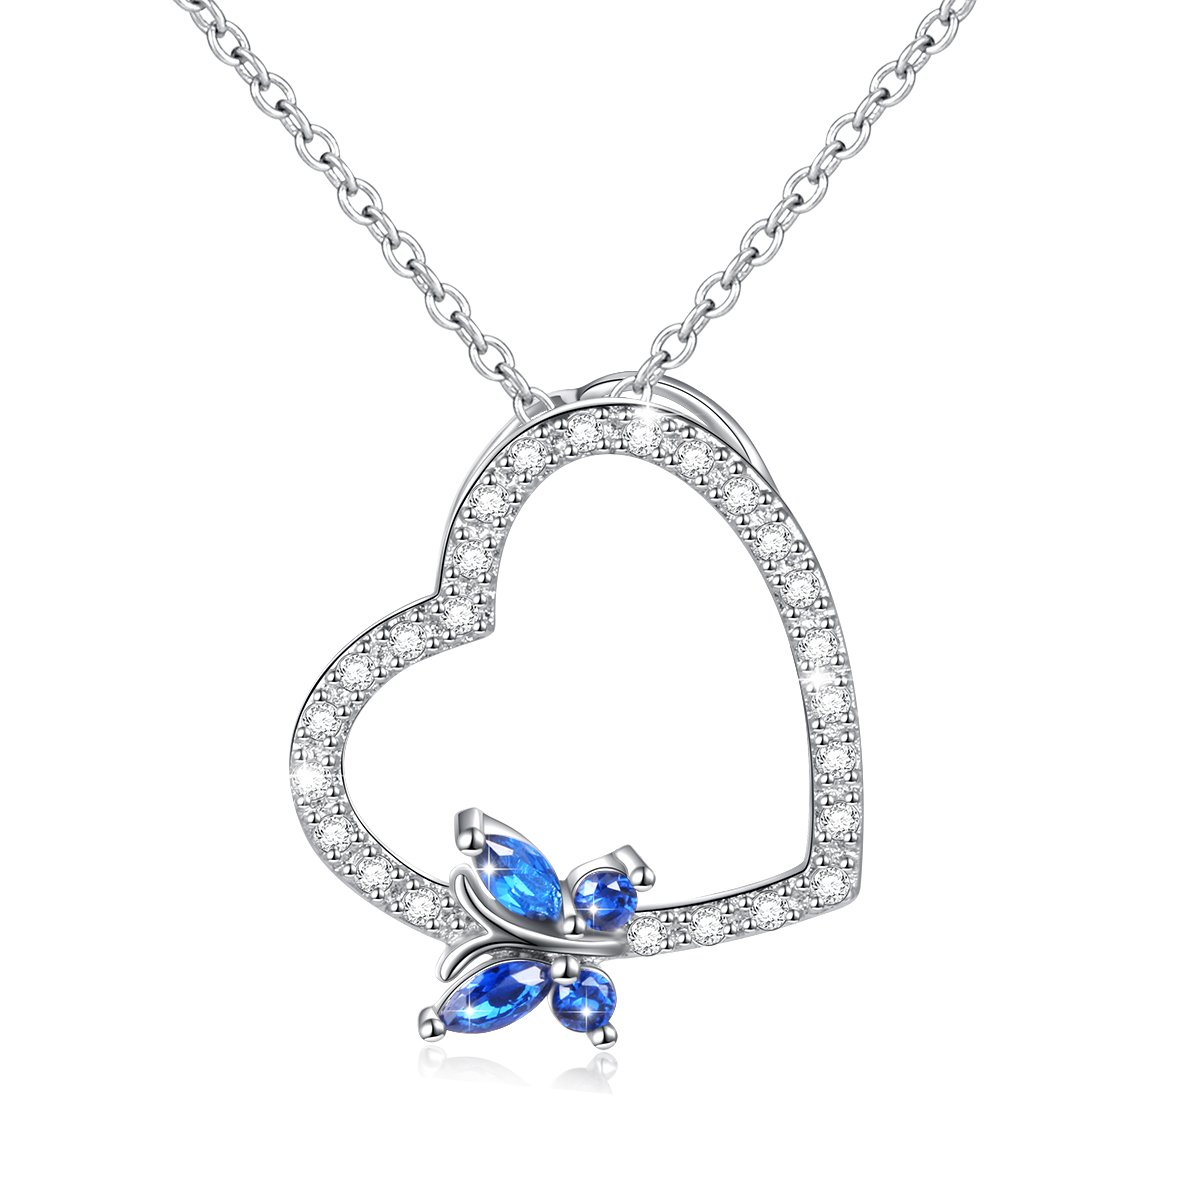 783ba547061d64 Get Quotations · Butterfly Necklace 925 Sterling Silver Blue Cubic Zirconia  Butterfly Heart Charm Necklace for Women Girls,